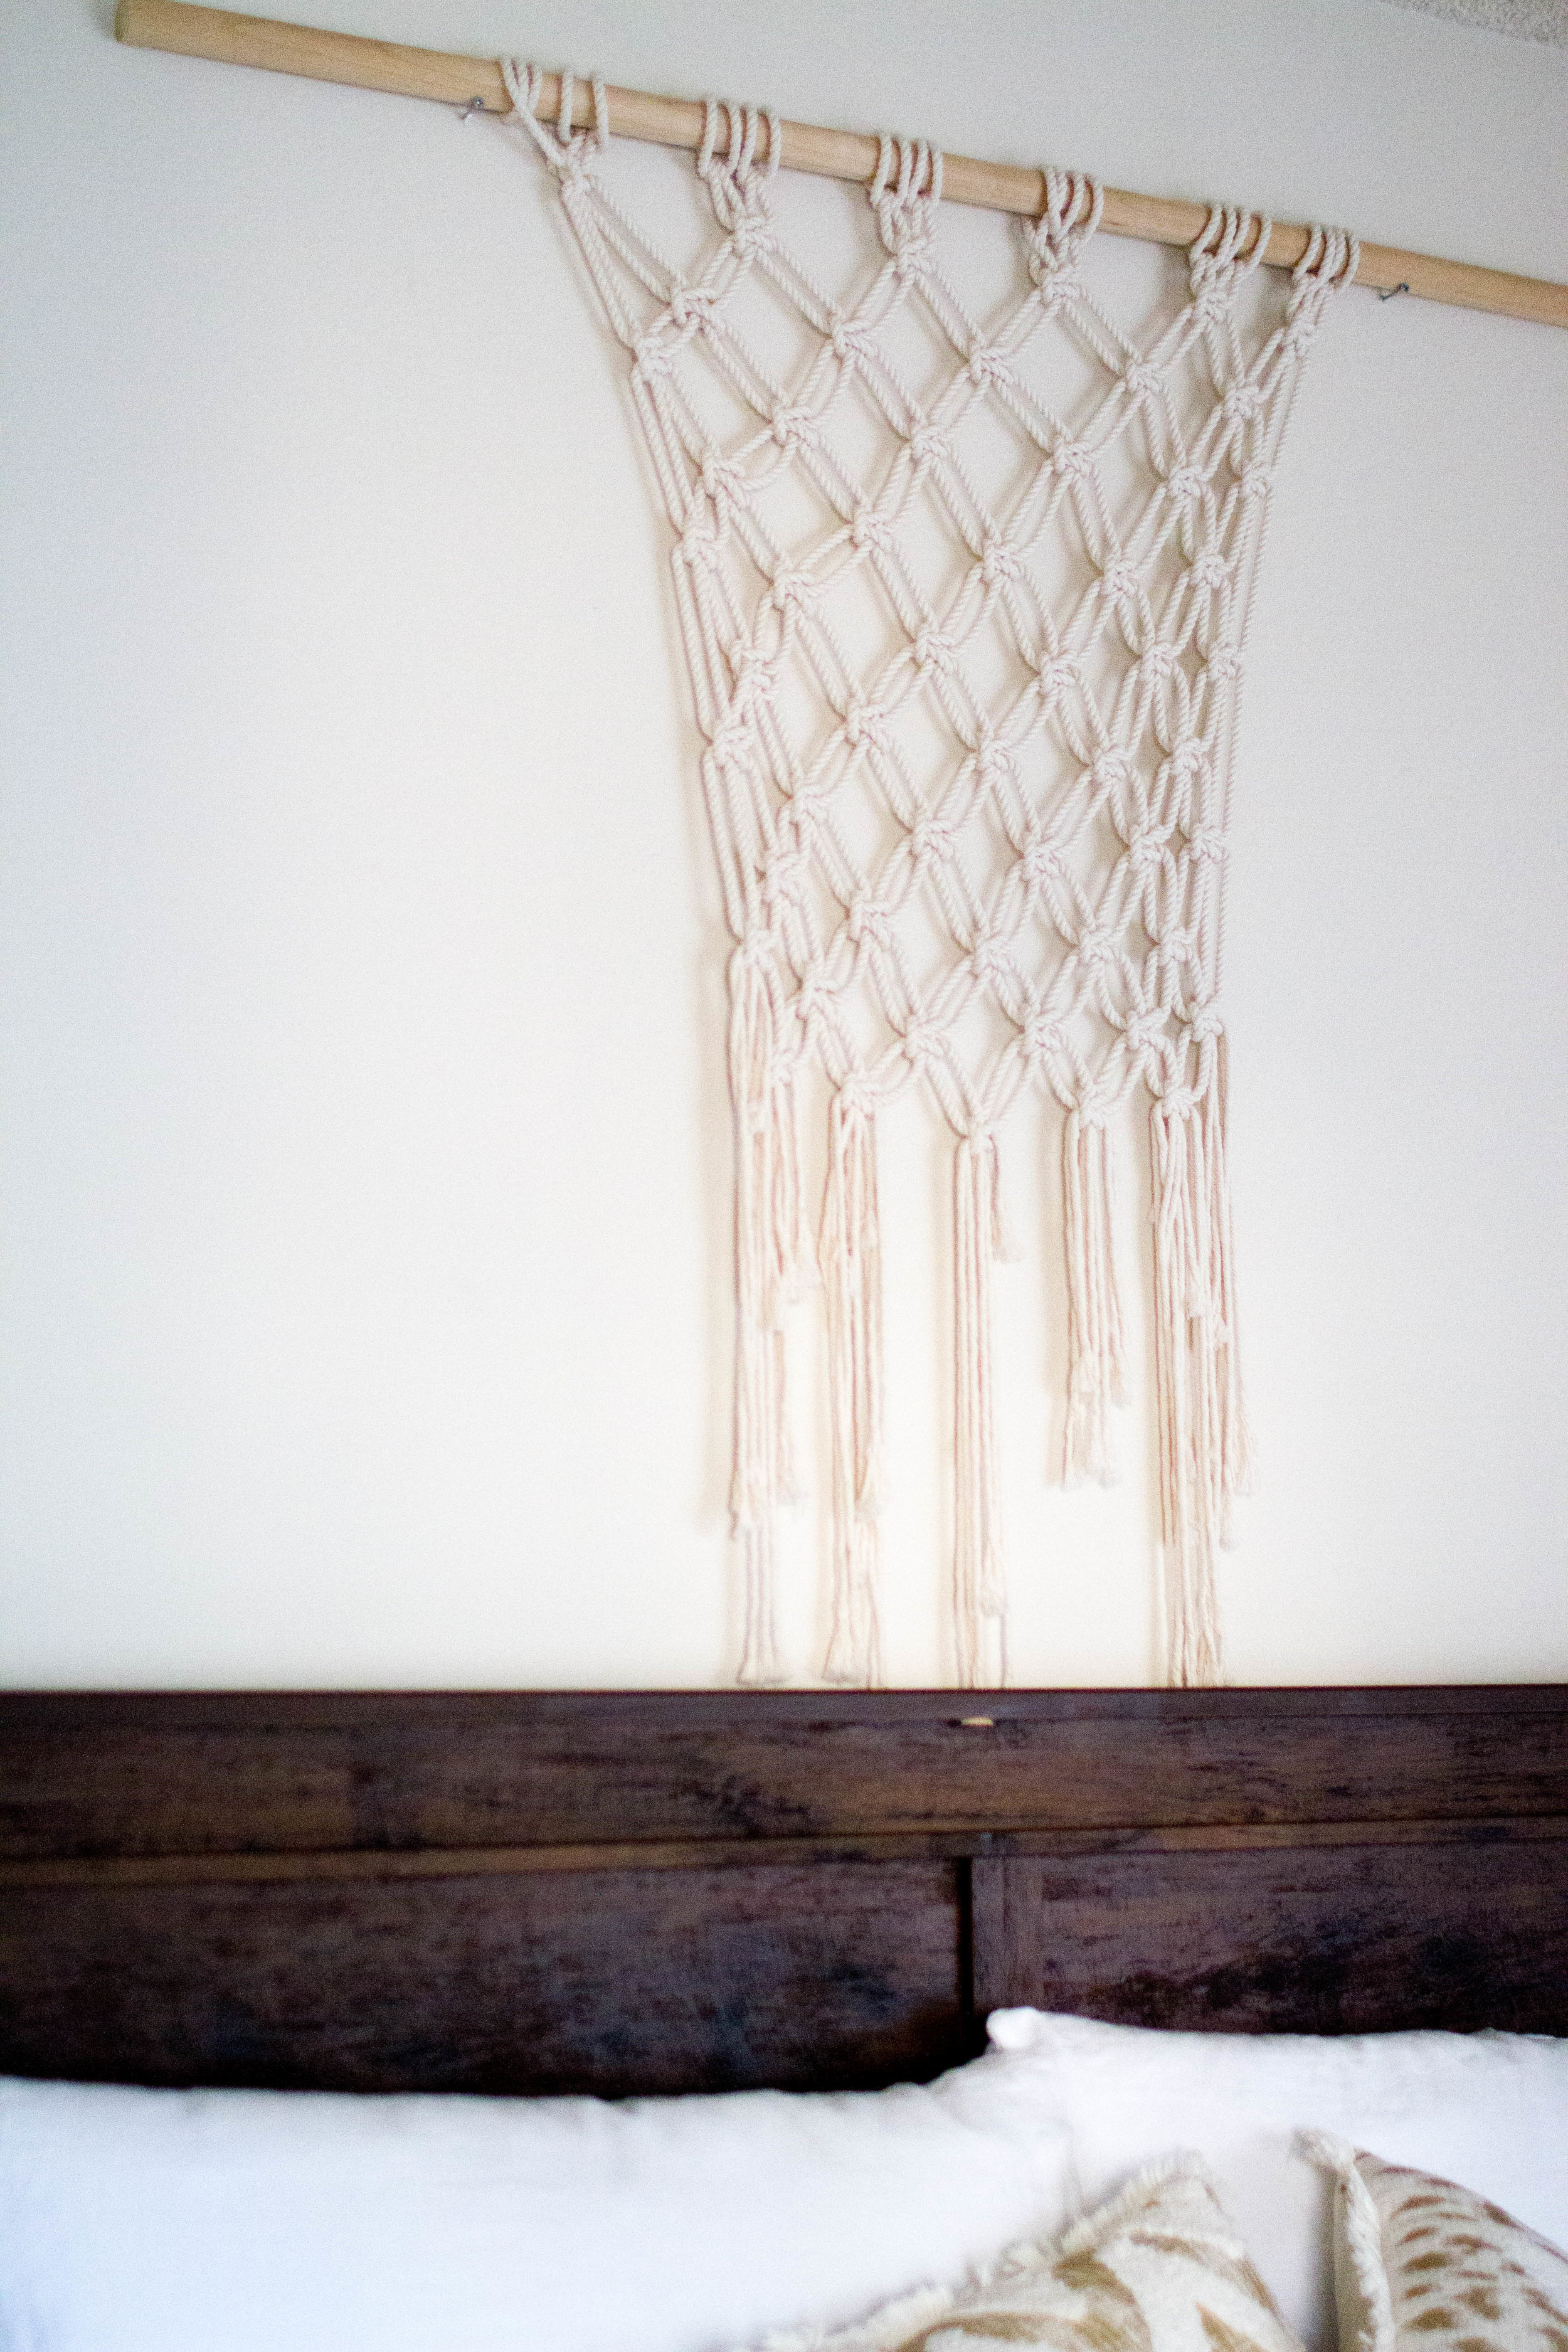 Shop wall hangings  HERE  and  HERE